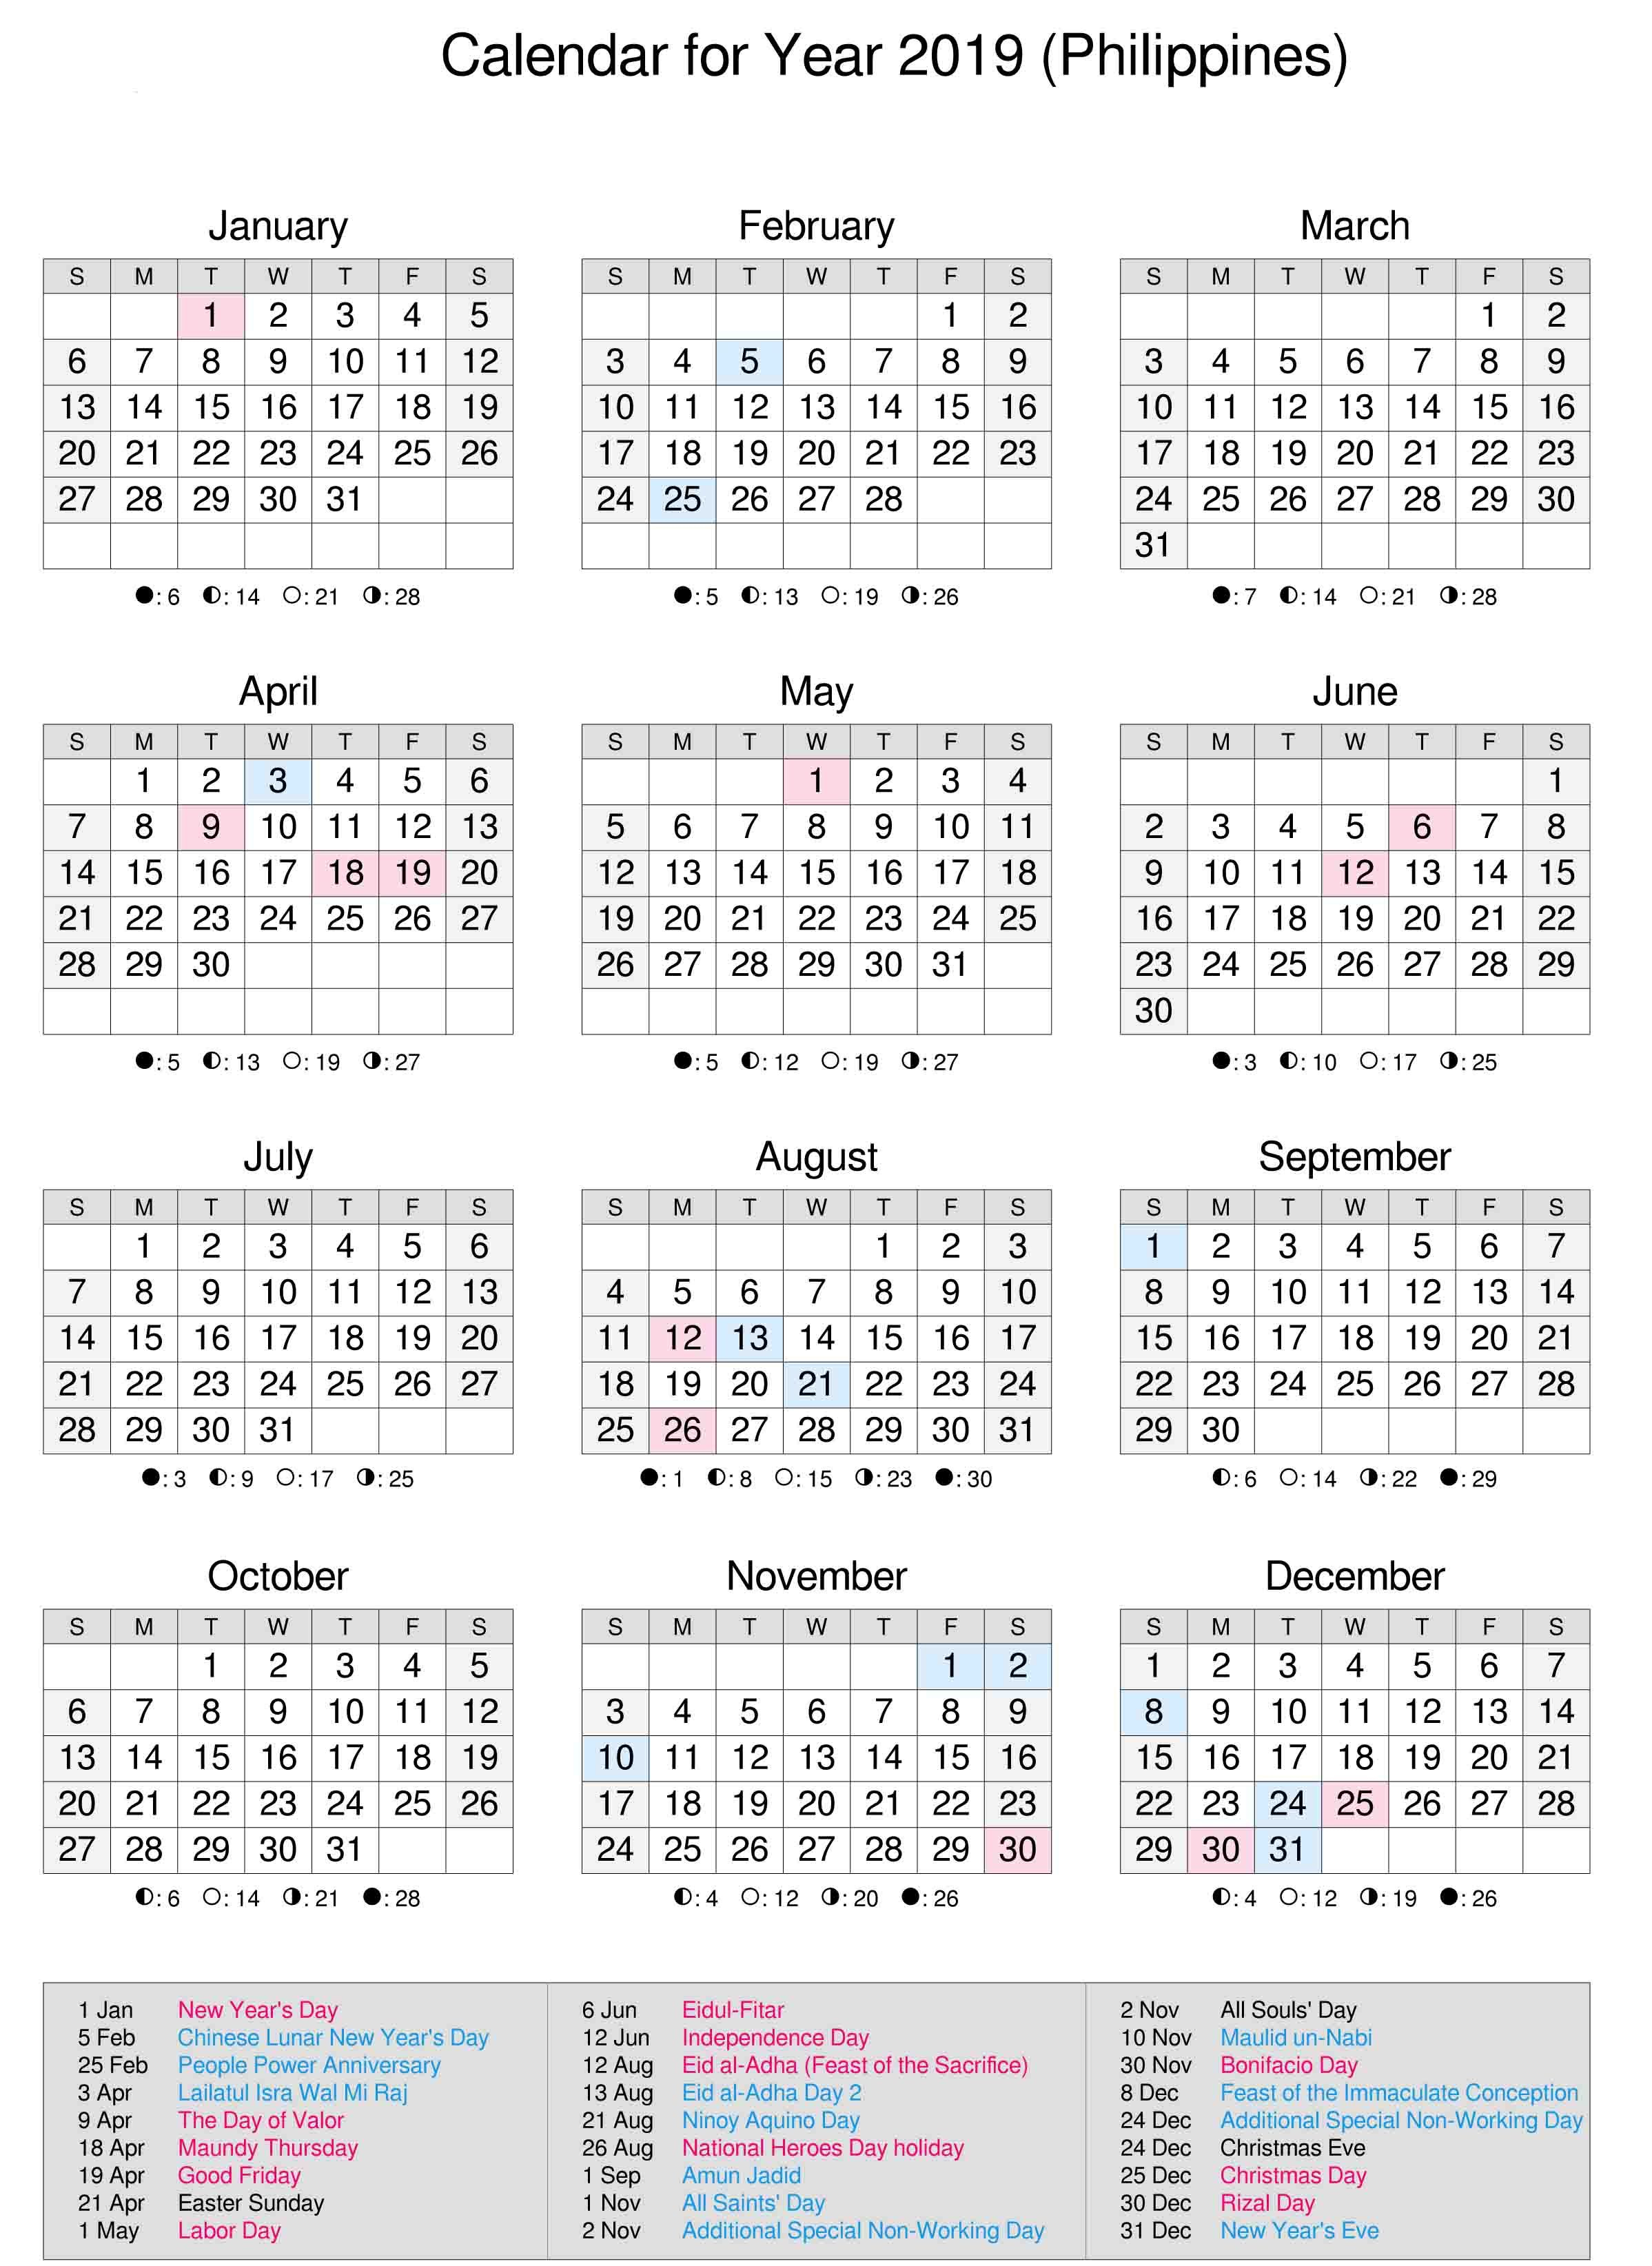 Philippines 2019 Calendar | Calendar 2019 | 2019 Calendar, Calendar pertaining to Printable Template For Philippine Calendar